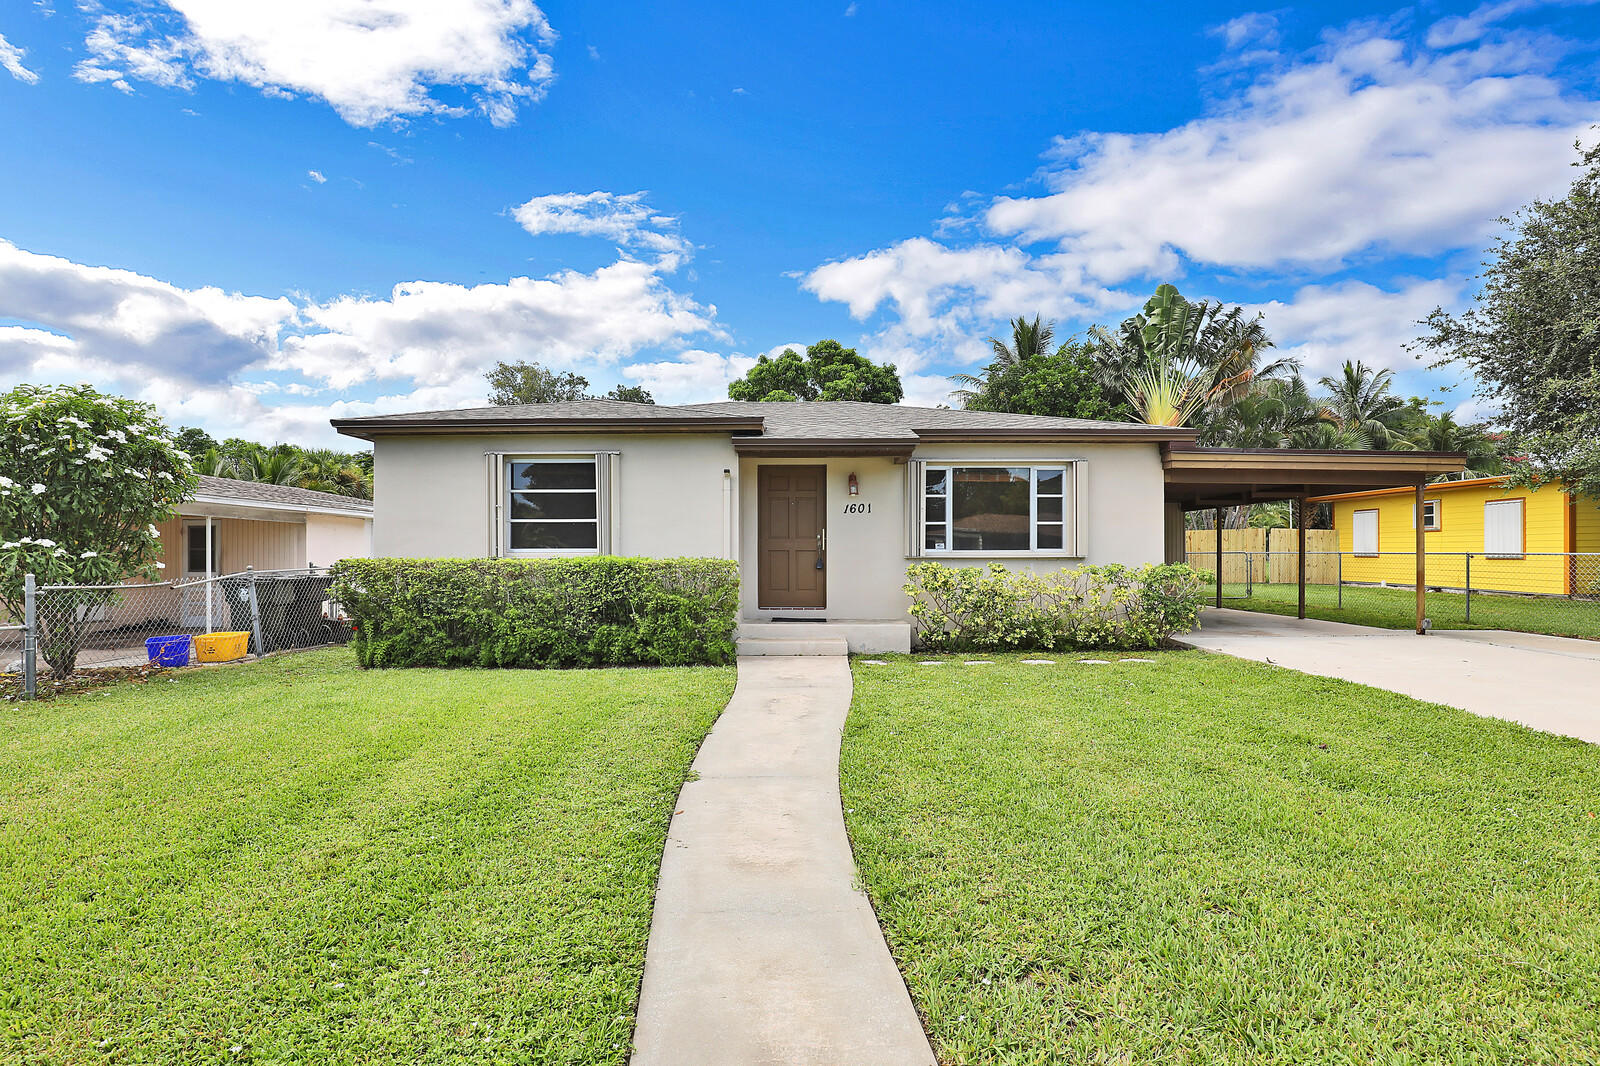 Don't miss this beautifully remodeled 2/1 charmer with carport in Lake Worth Heights! The home features CBS construction, 2021 roof, 2021 kitchen with high end solid wood cabinetry, granite tops, stainless appliances, and dimensional subway tile back splash.  The yellow oak floors have been restored to perfection and the fixtures have been recently updated.  On the mechanical side the home offers a 2019 HVAC system, updated electrical, and accordion hurricane shutters.  All of this and a beautifully manicured and oversized yard makes this house hard to beat.  Schedule your private tour today!